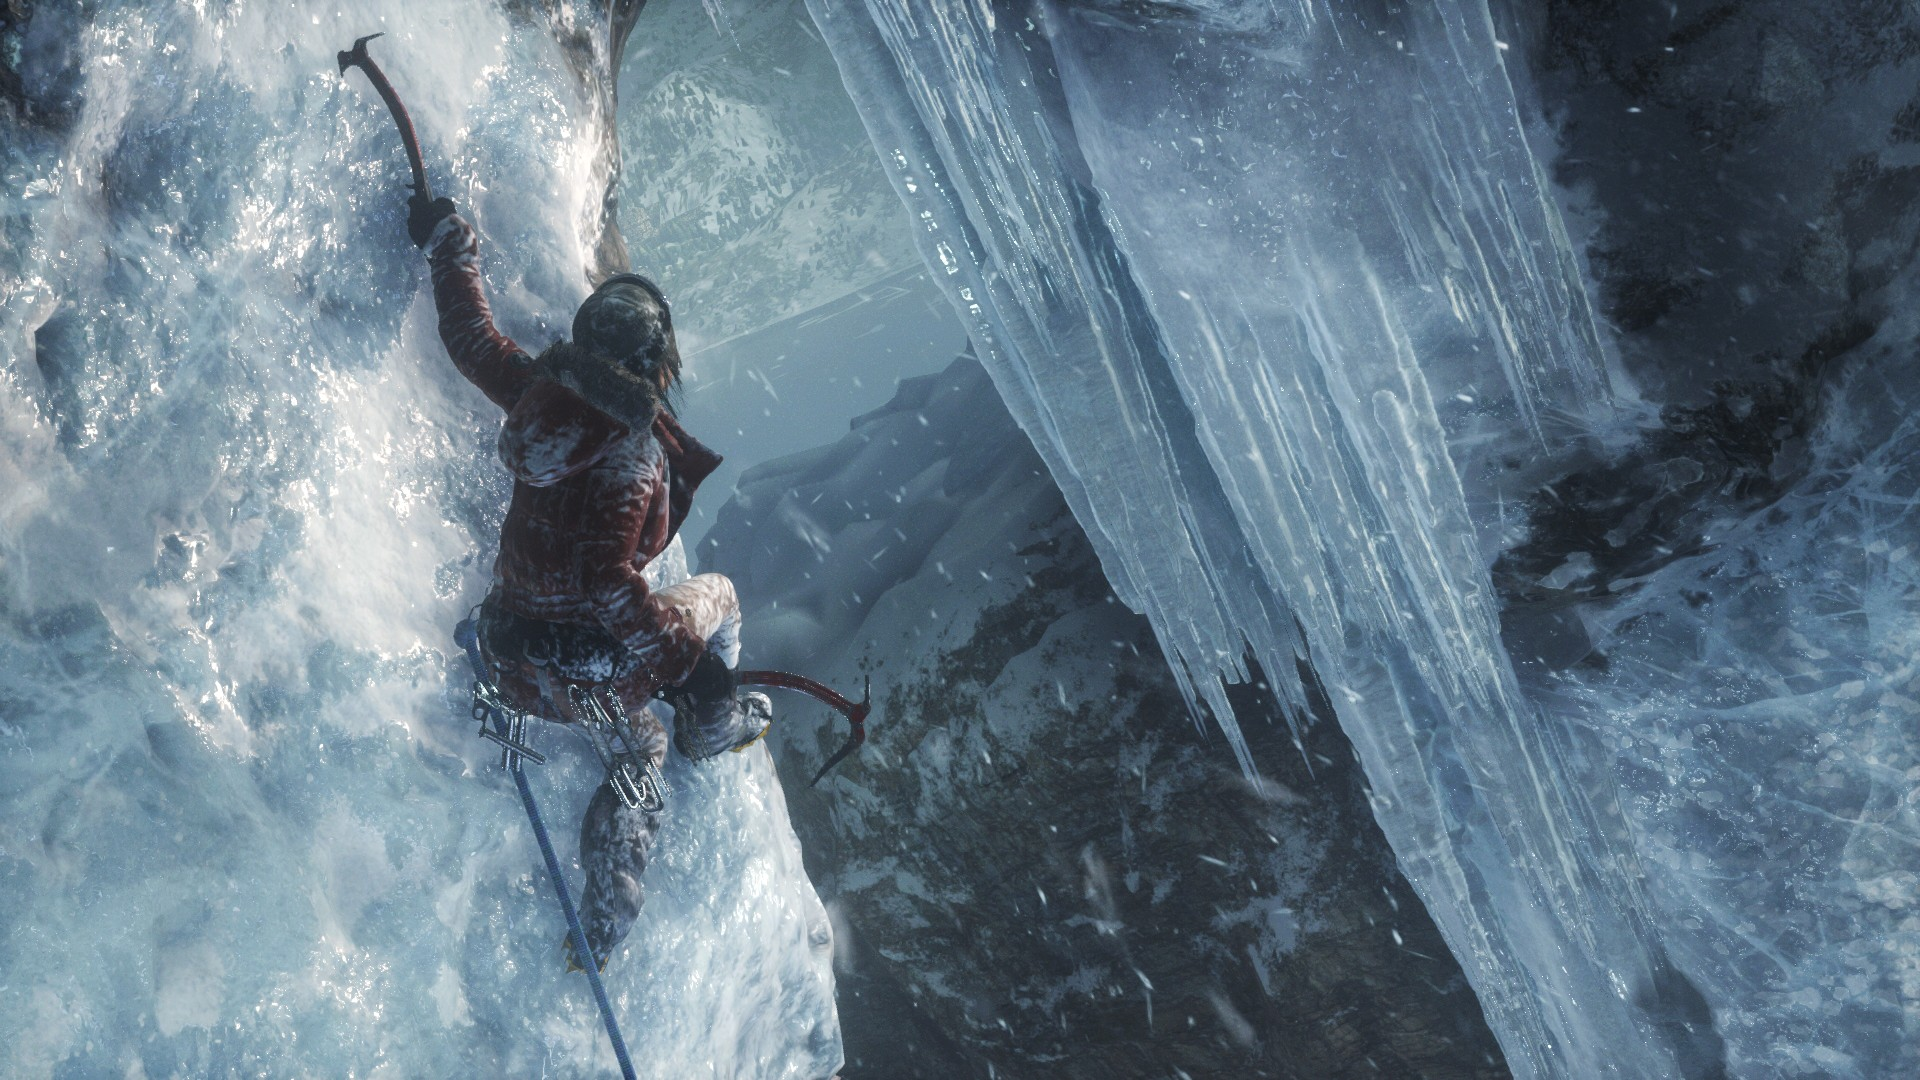 Free Download Rise Of The Tomb Raider Wallpaper 04 1920x1080 For